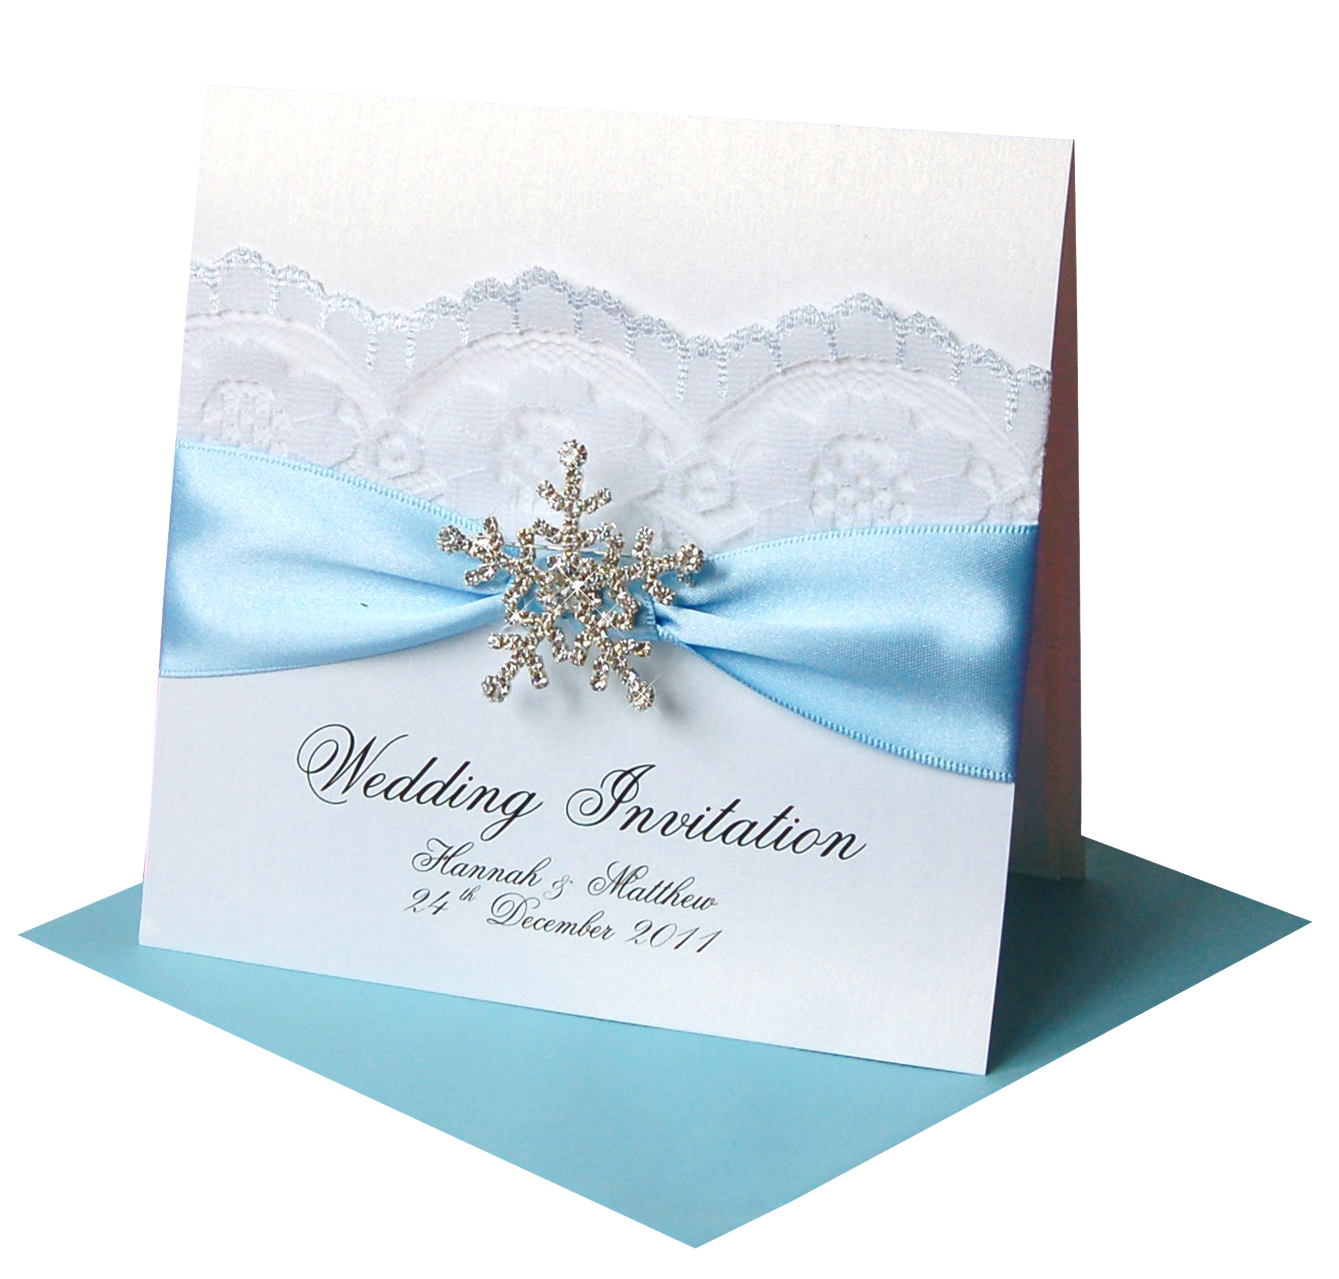 Winter Wedding Invitations Snowflake Crystal Made With Love Blog